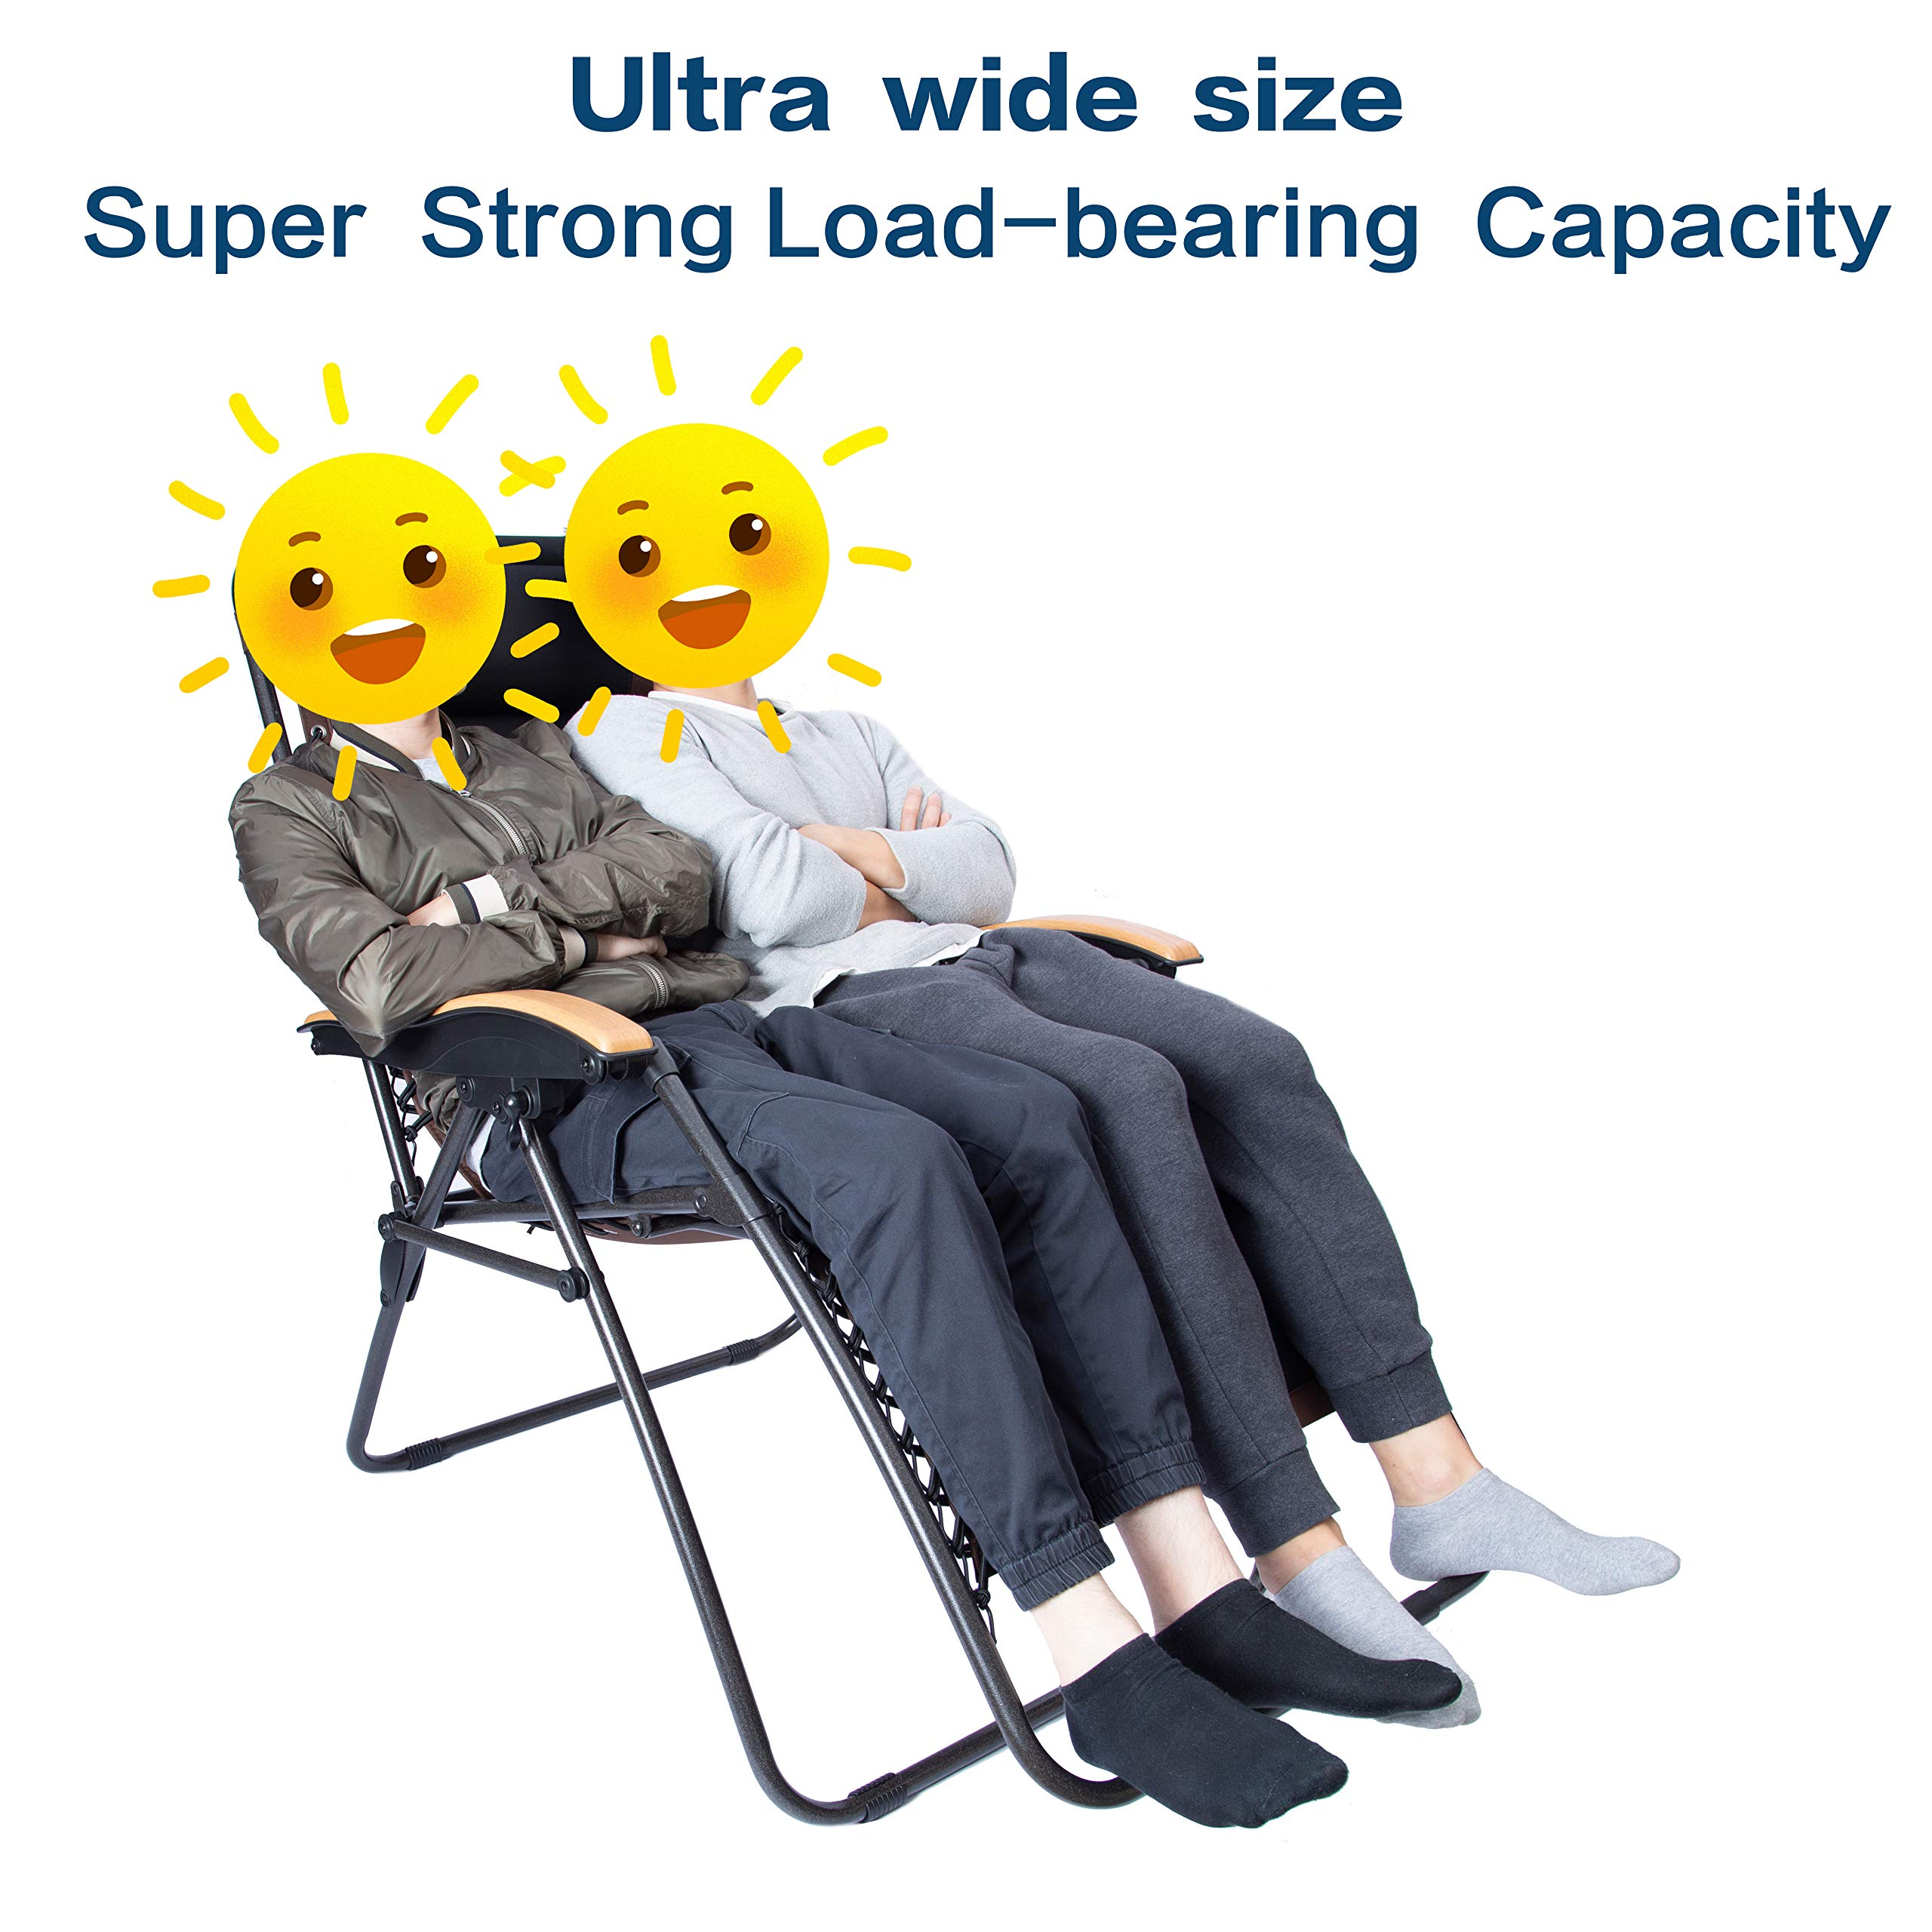 LUCKYBERRY Deluxe Oversized Padded Zero Gravity Chair XL Black Brown Cup Holder Lounge Patio Chairs Outdoor Yard Beach Support 350lbs by LUCKYBERRY (Image #2)